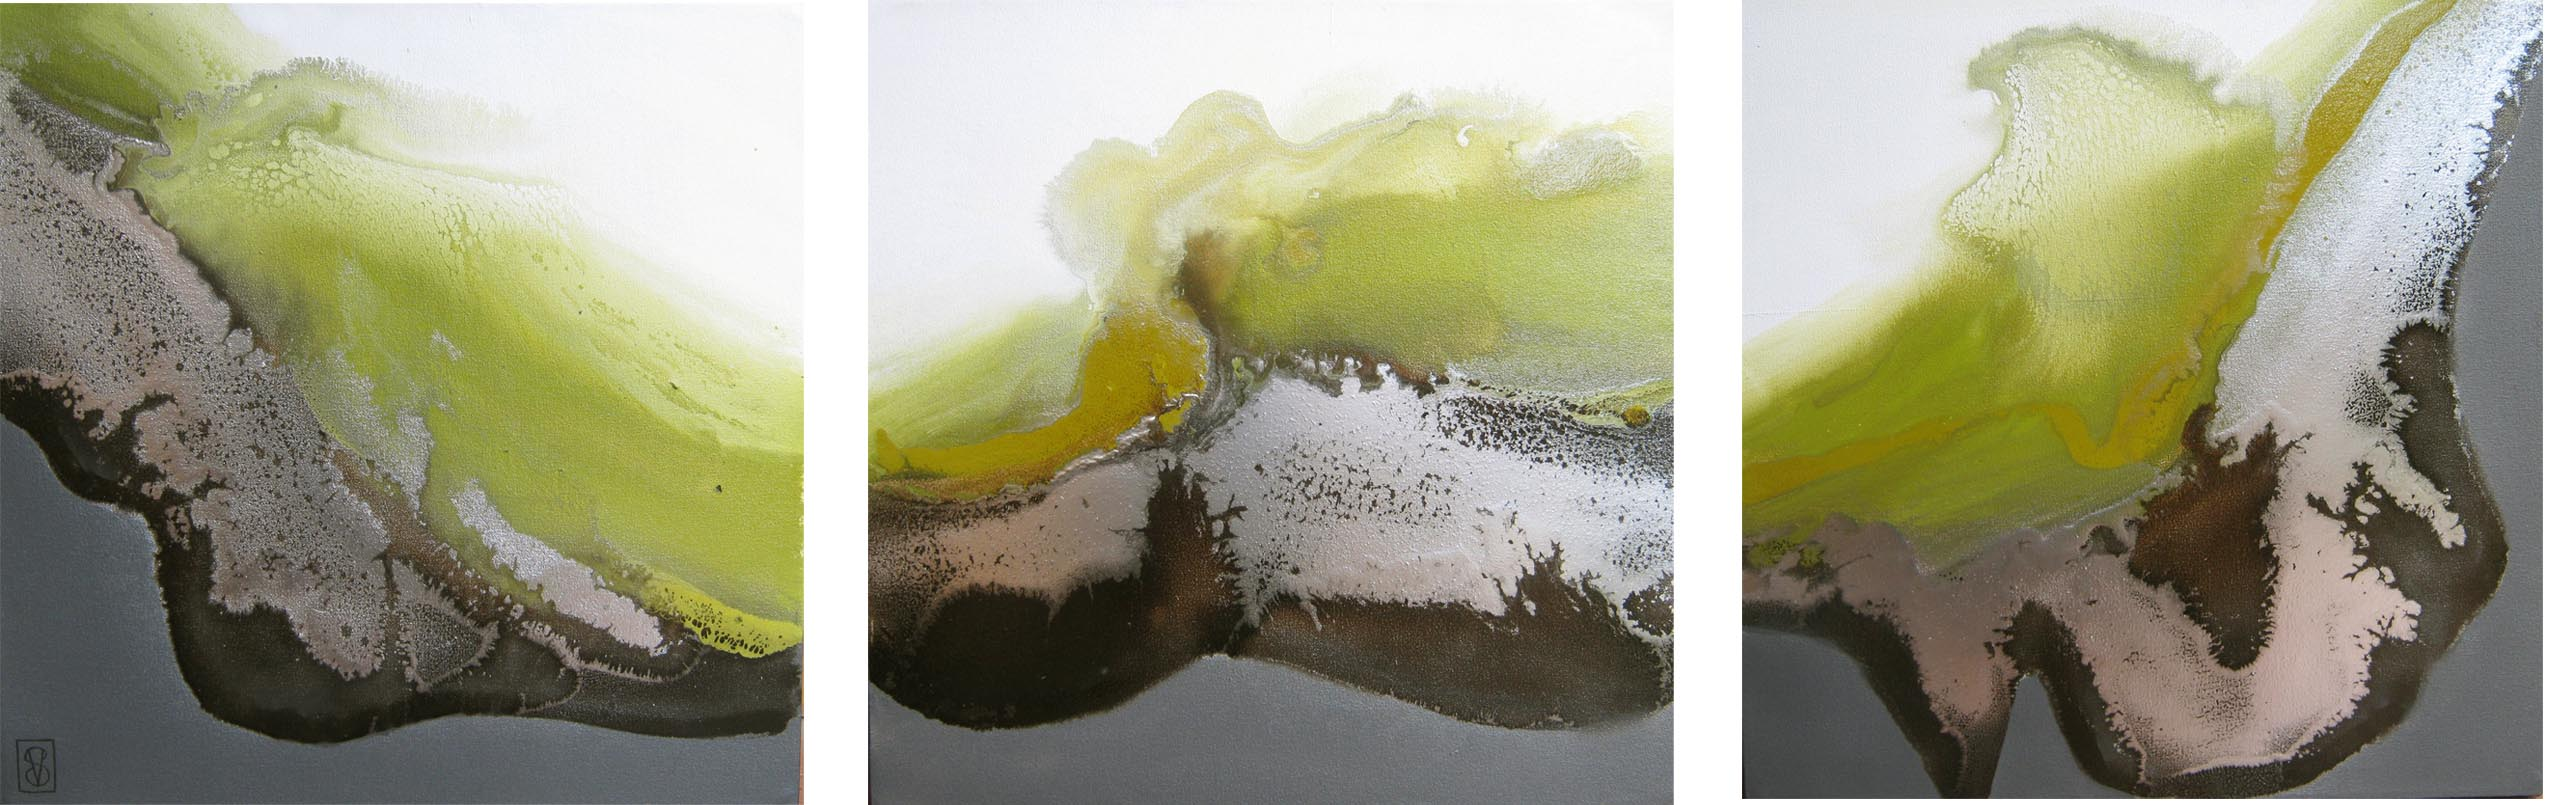 Vicky Sanders Abstract - Lime Crush